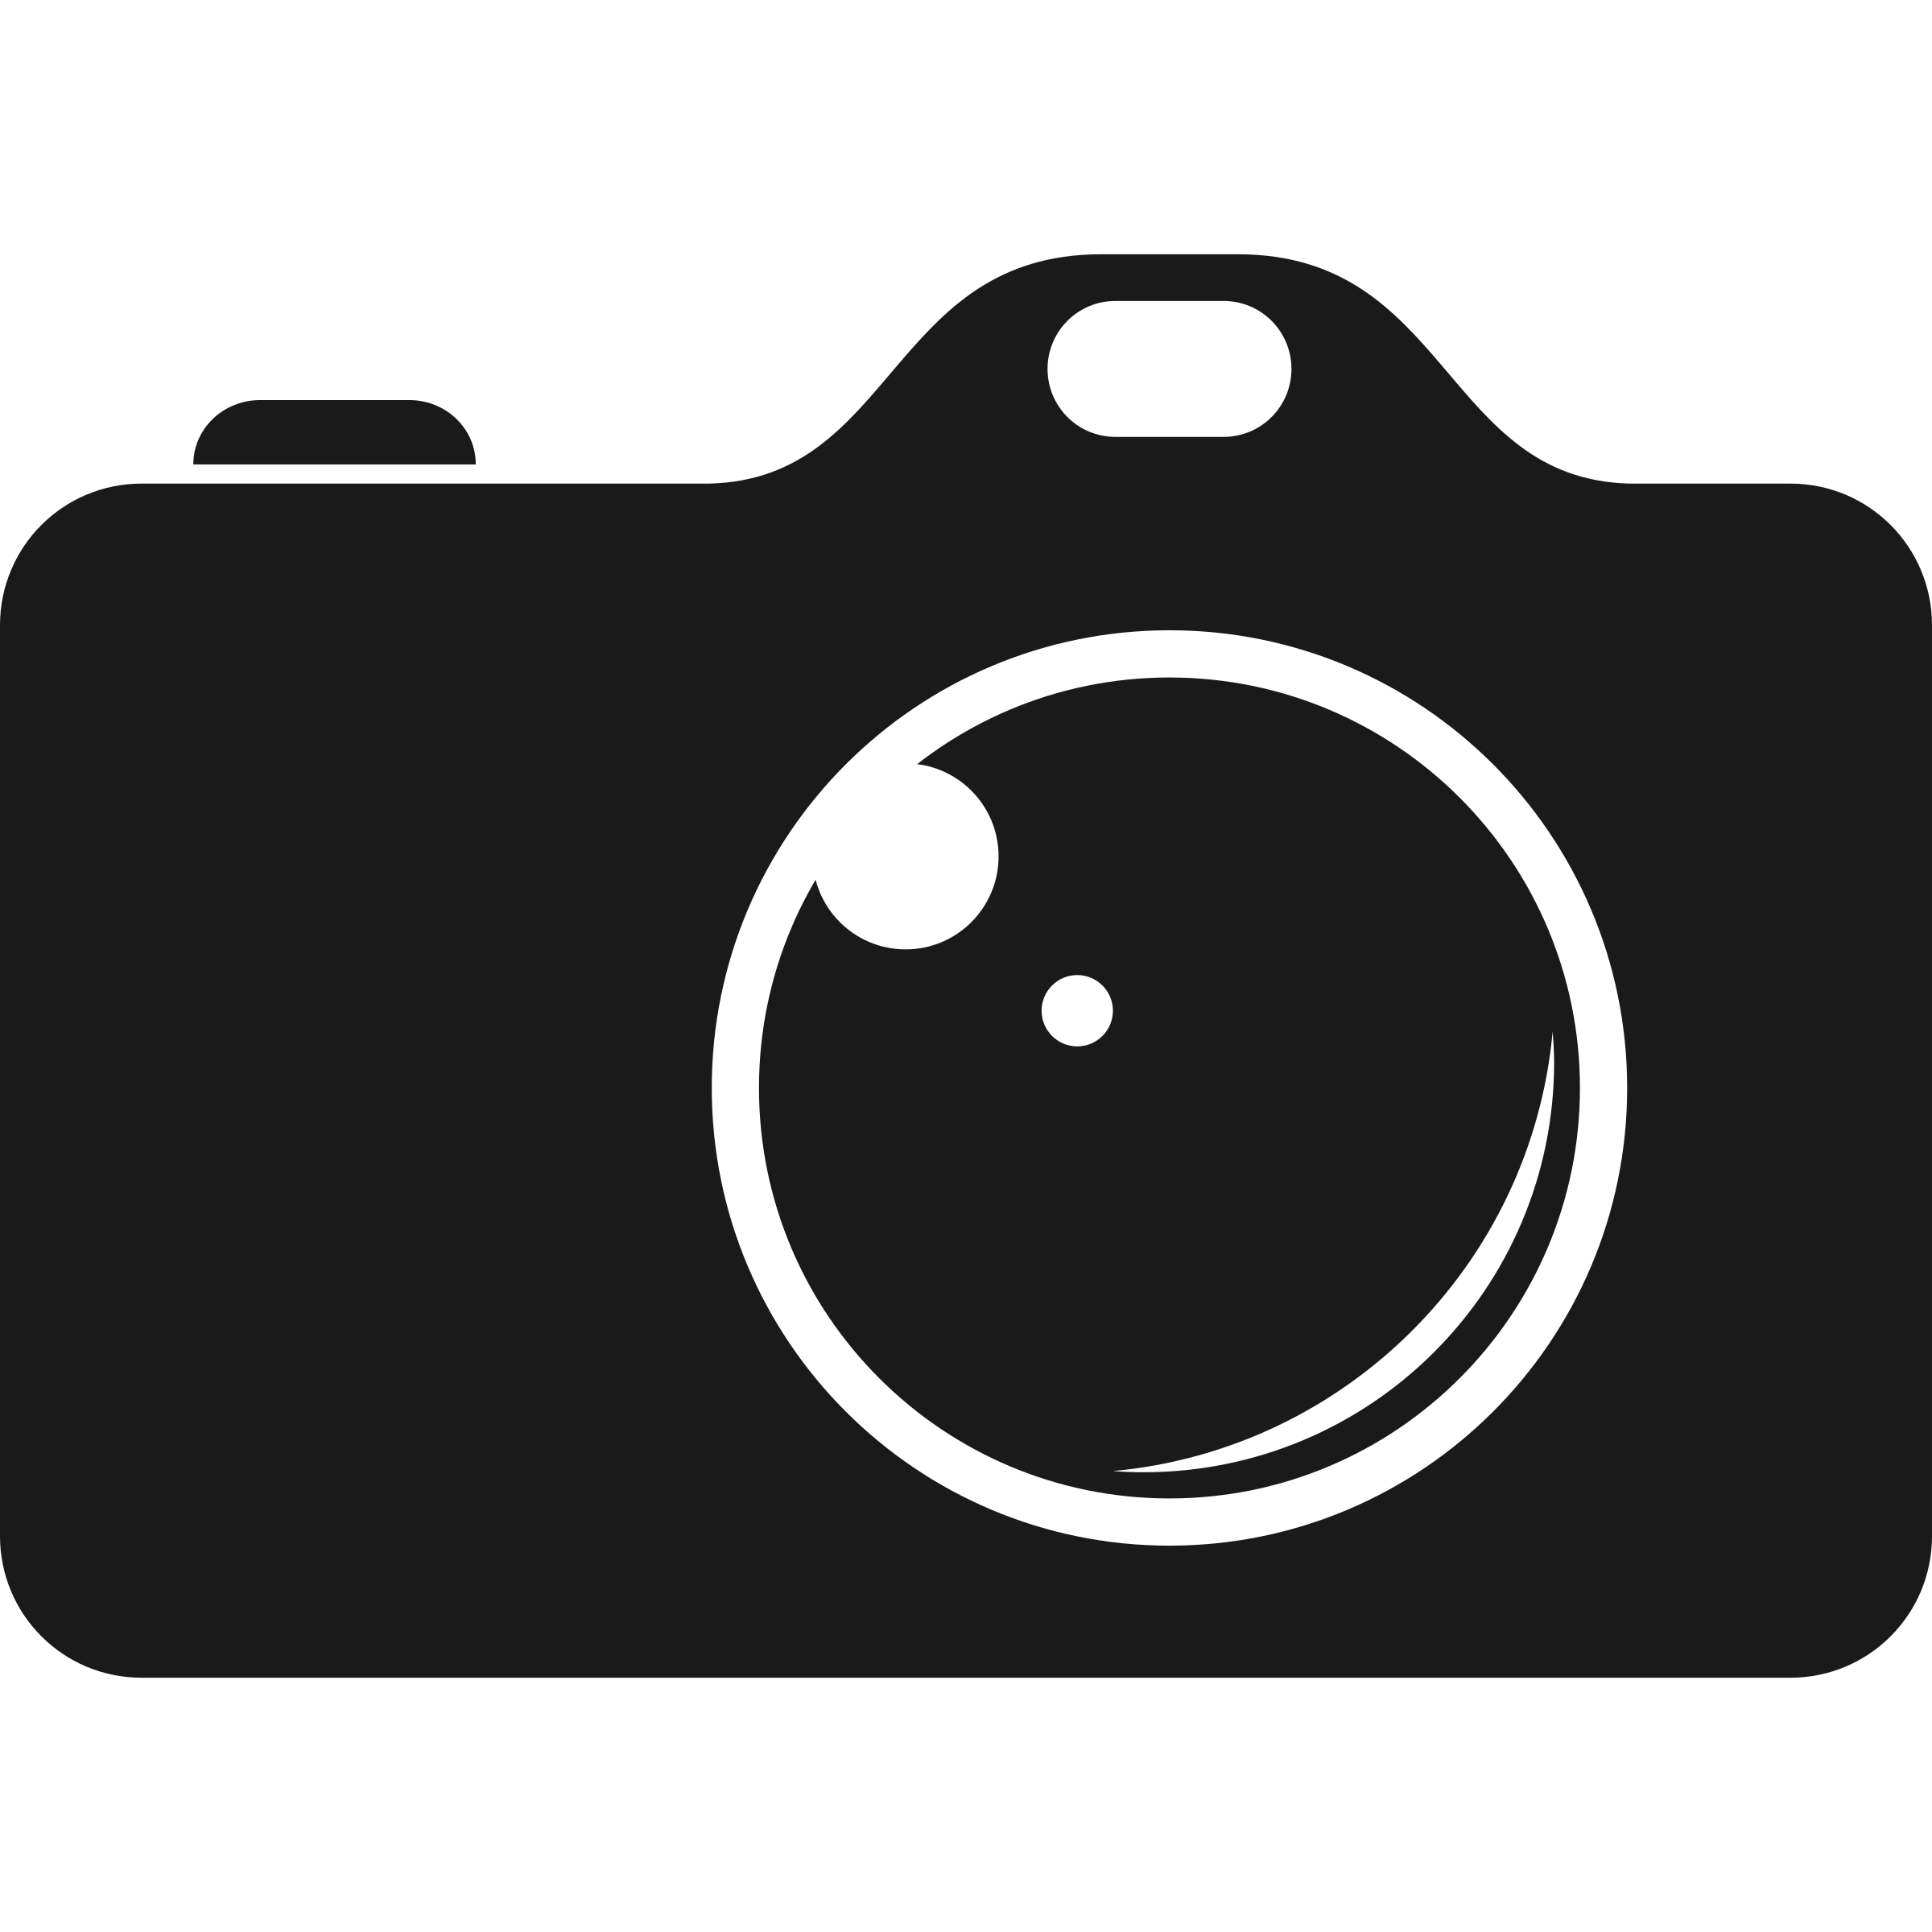 Camera Icon Clipart.